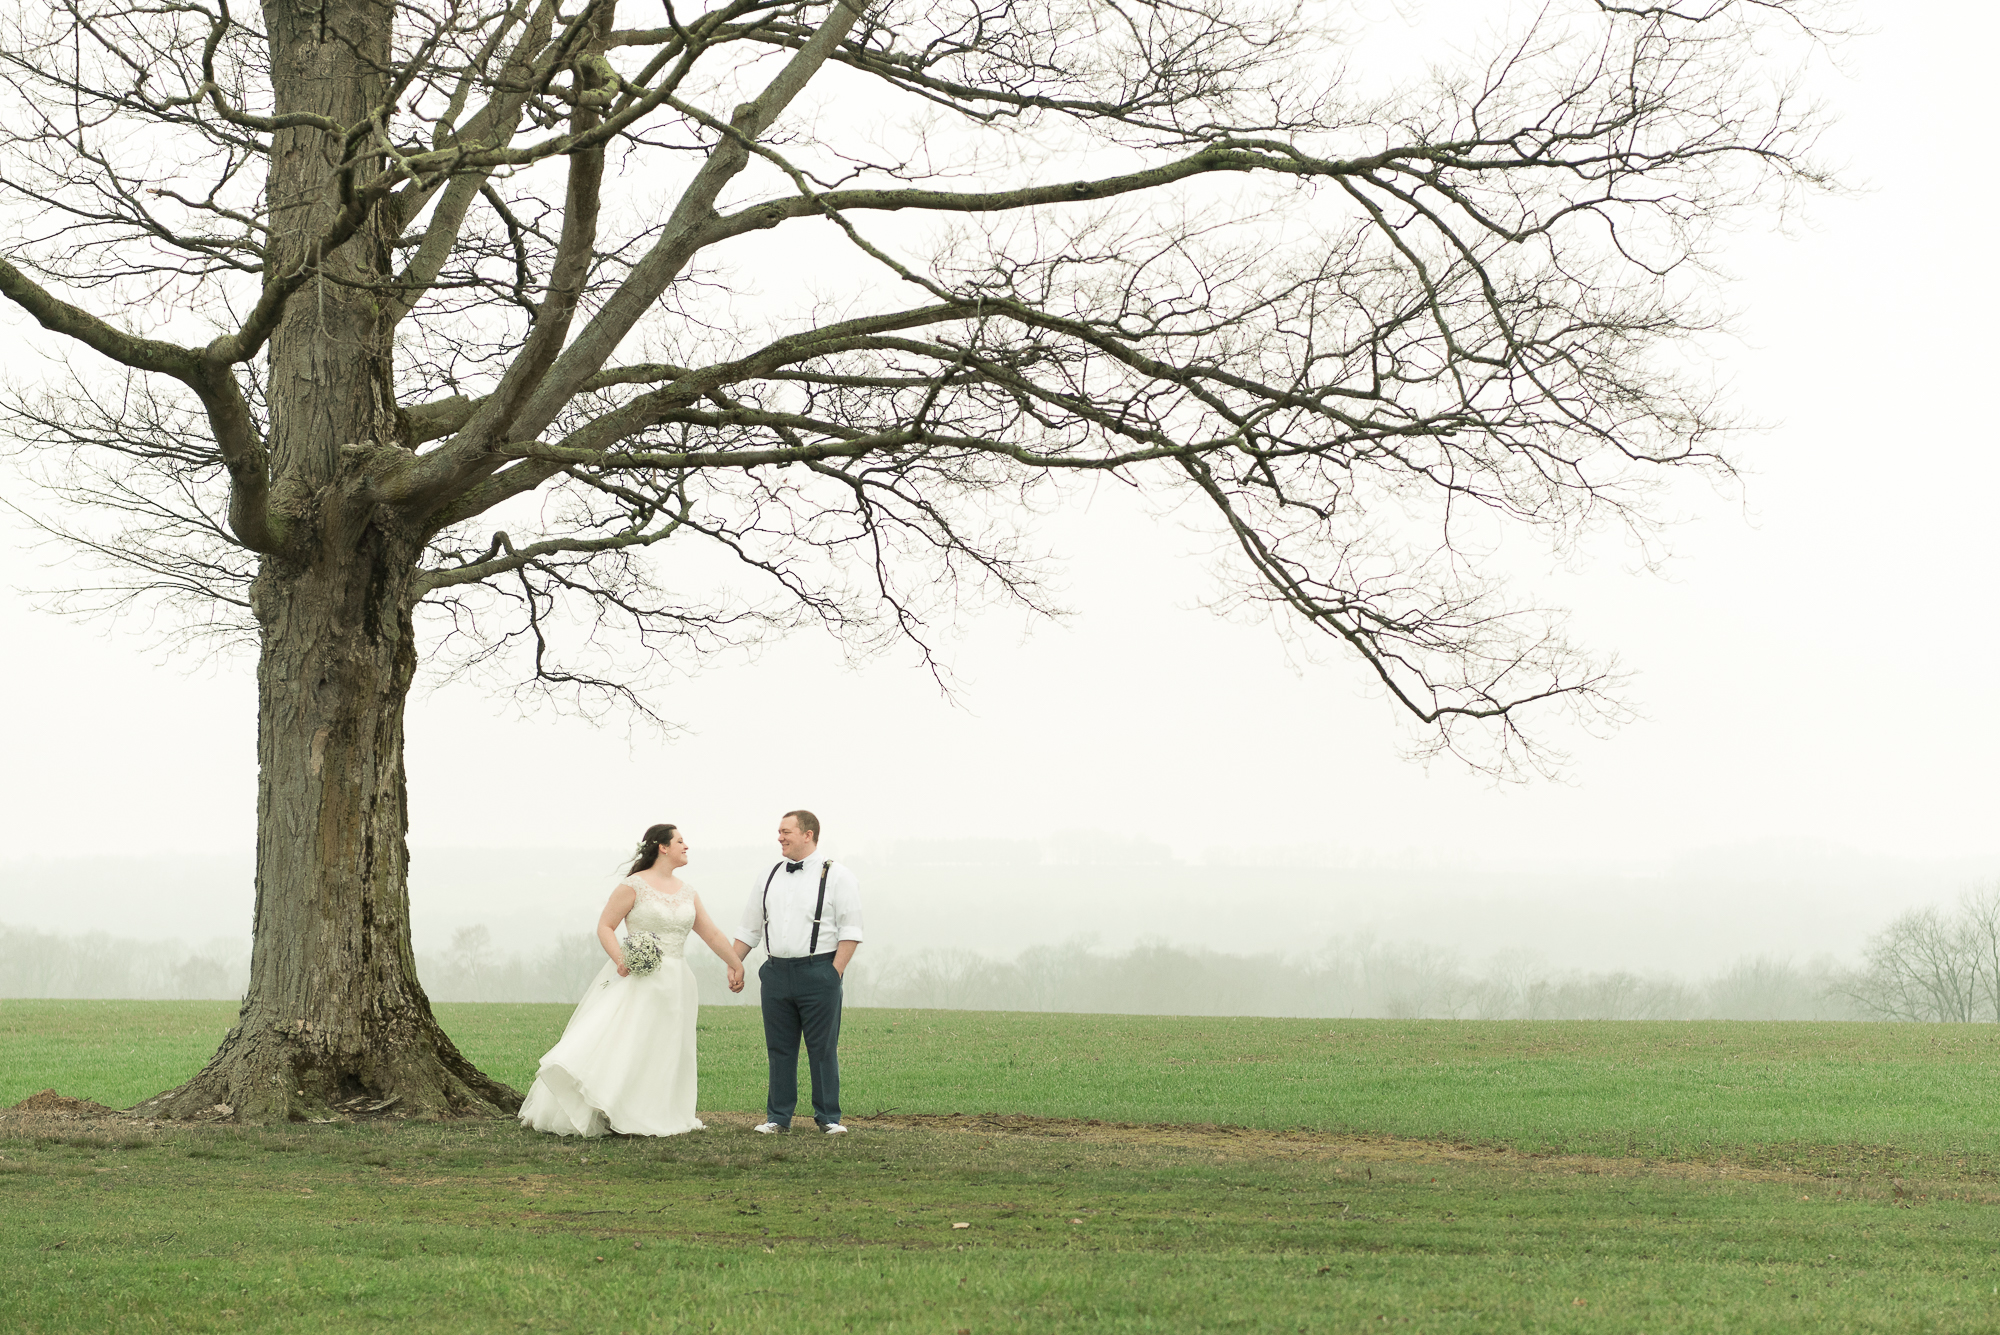 Well, it did rain, but as we left the church it tapered off, and by the time we reached the reception venue all that was left was this beautiful mist on the horizon which added a dreamy, romantic quality to these outdoor shots. The setting fit our couple - calm and serene. Throughout the day, Molly and Mackenzie exuded calm (not always a common occurrence at weddings!), and they were up for anything we asked of them, happily enjoying the day they became husband and wife.  Look for more from Molly & Mackenzie's wedding; we'll be recapping more on the day and posting many more images very soon!